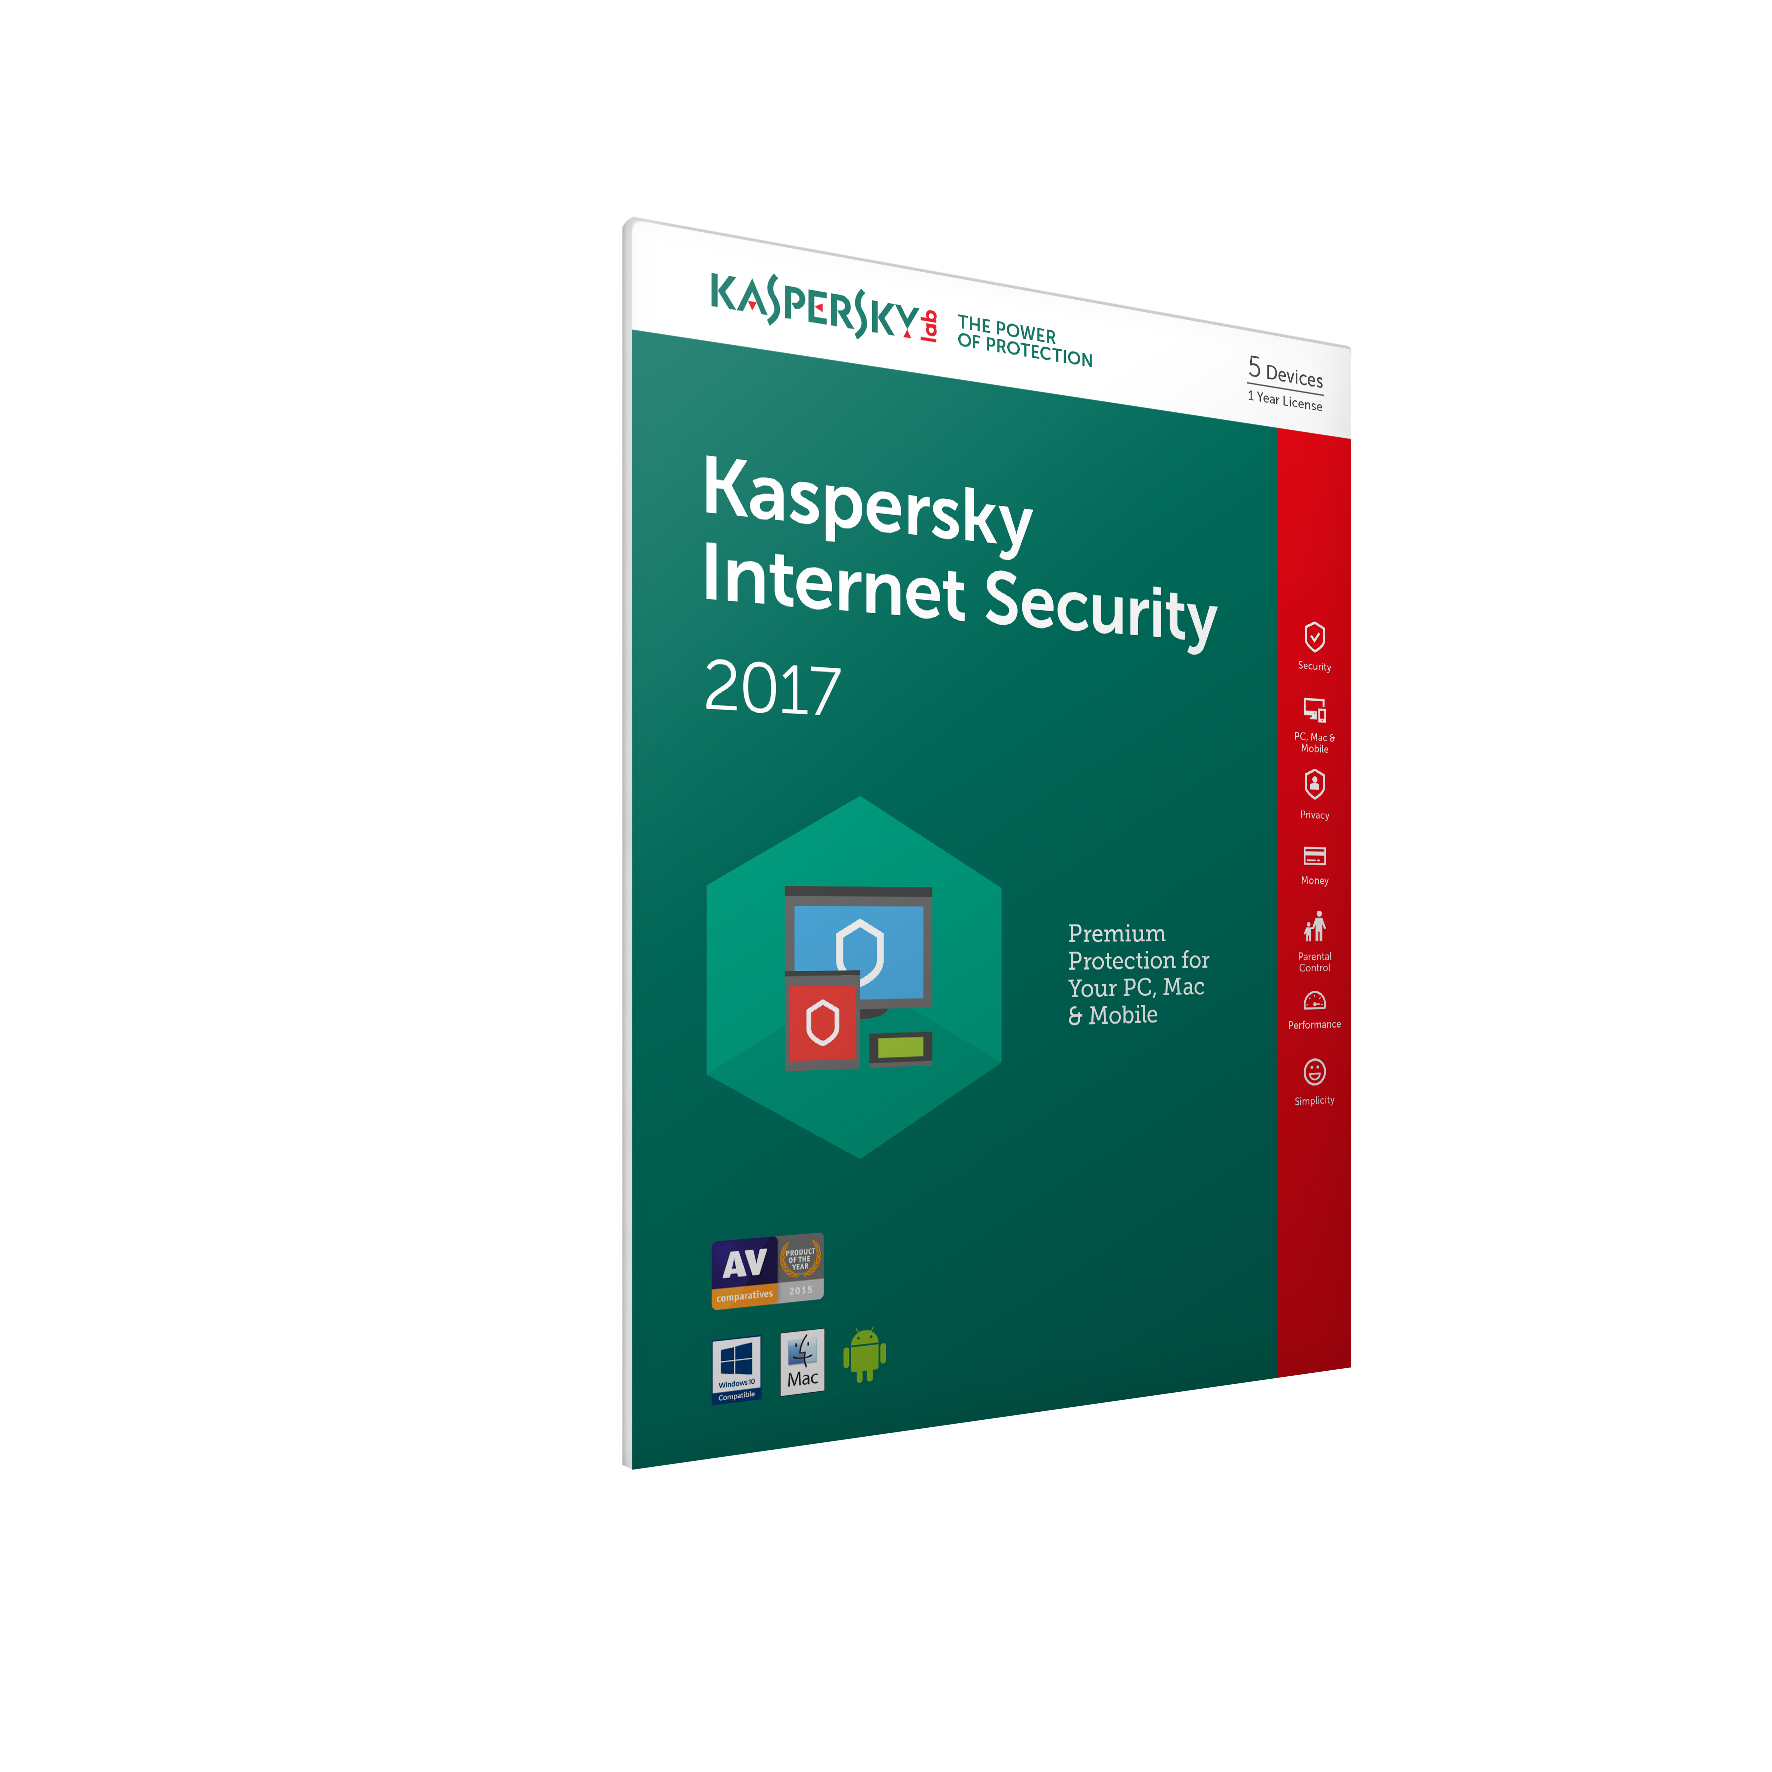 Kaspersky Lab Kaspersky Internet Security 2017 - 5 Devices 1 Year (Frustration Free Packaging)